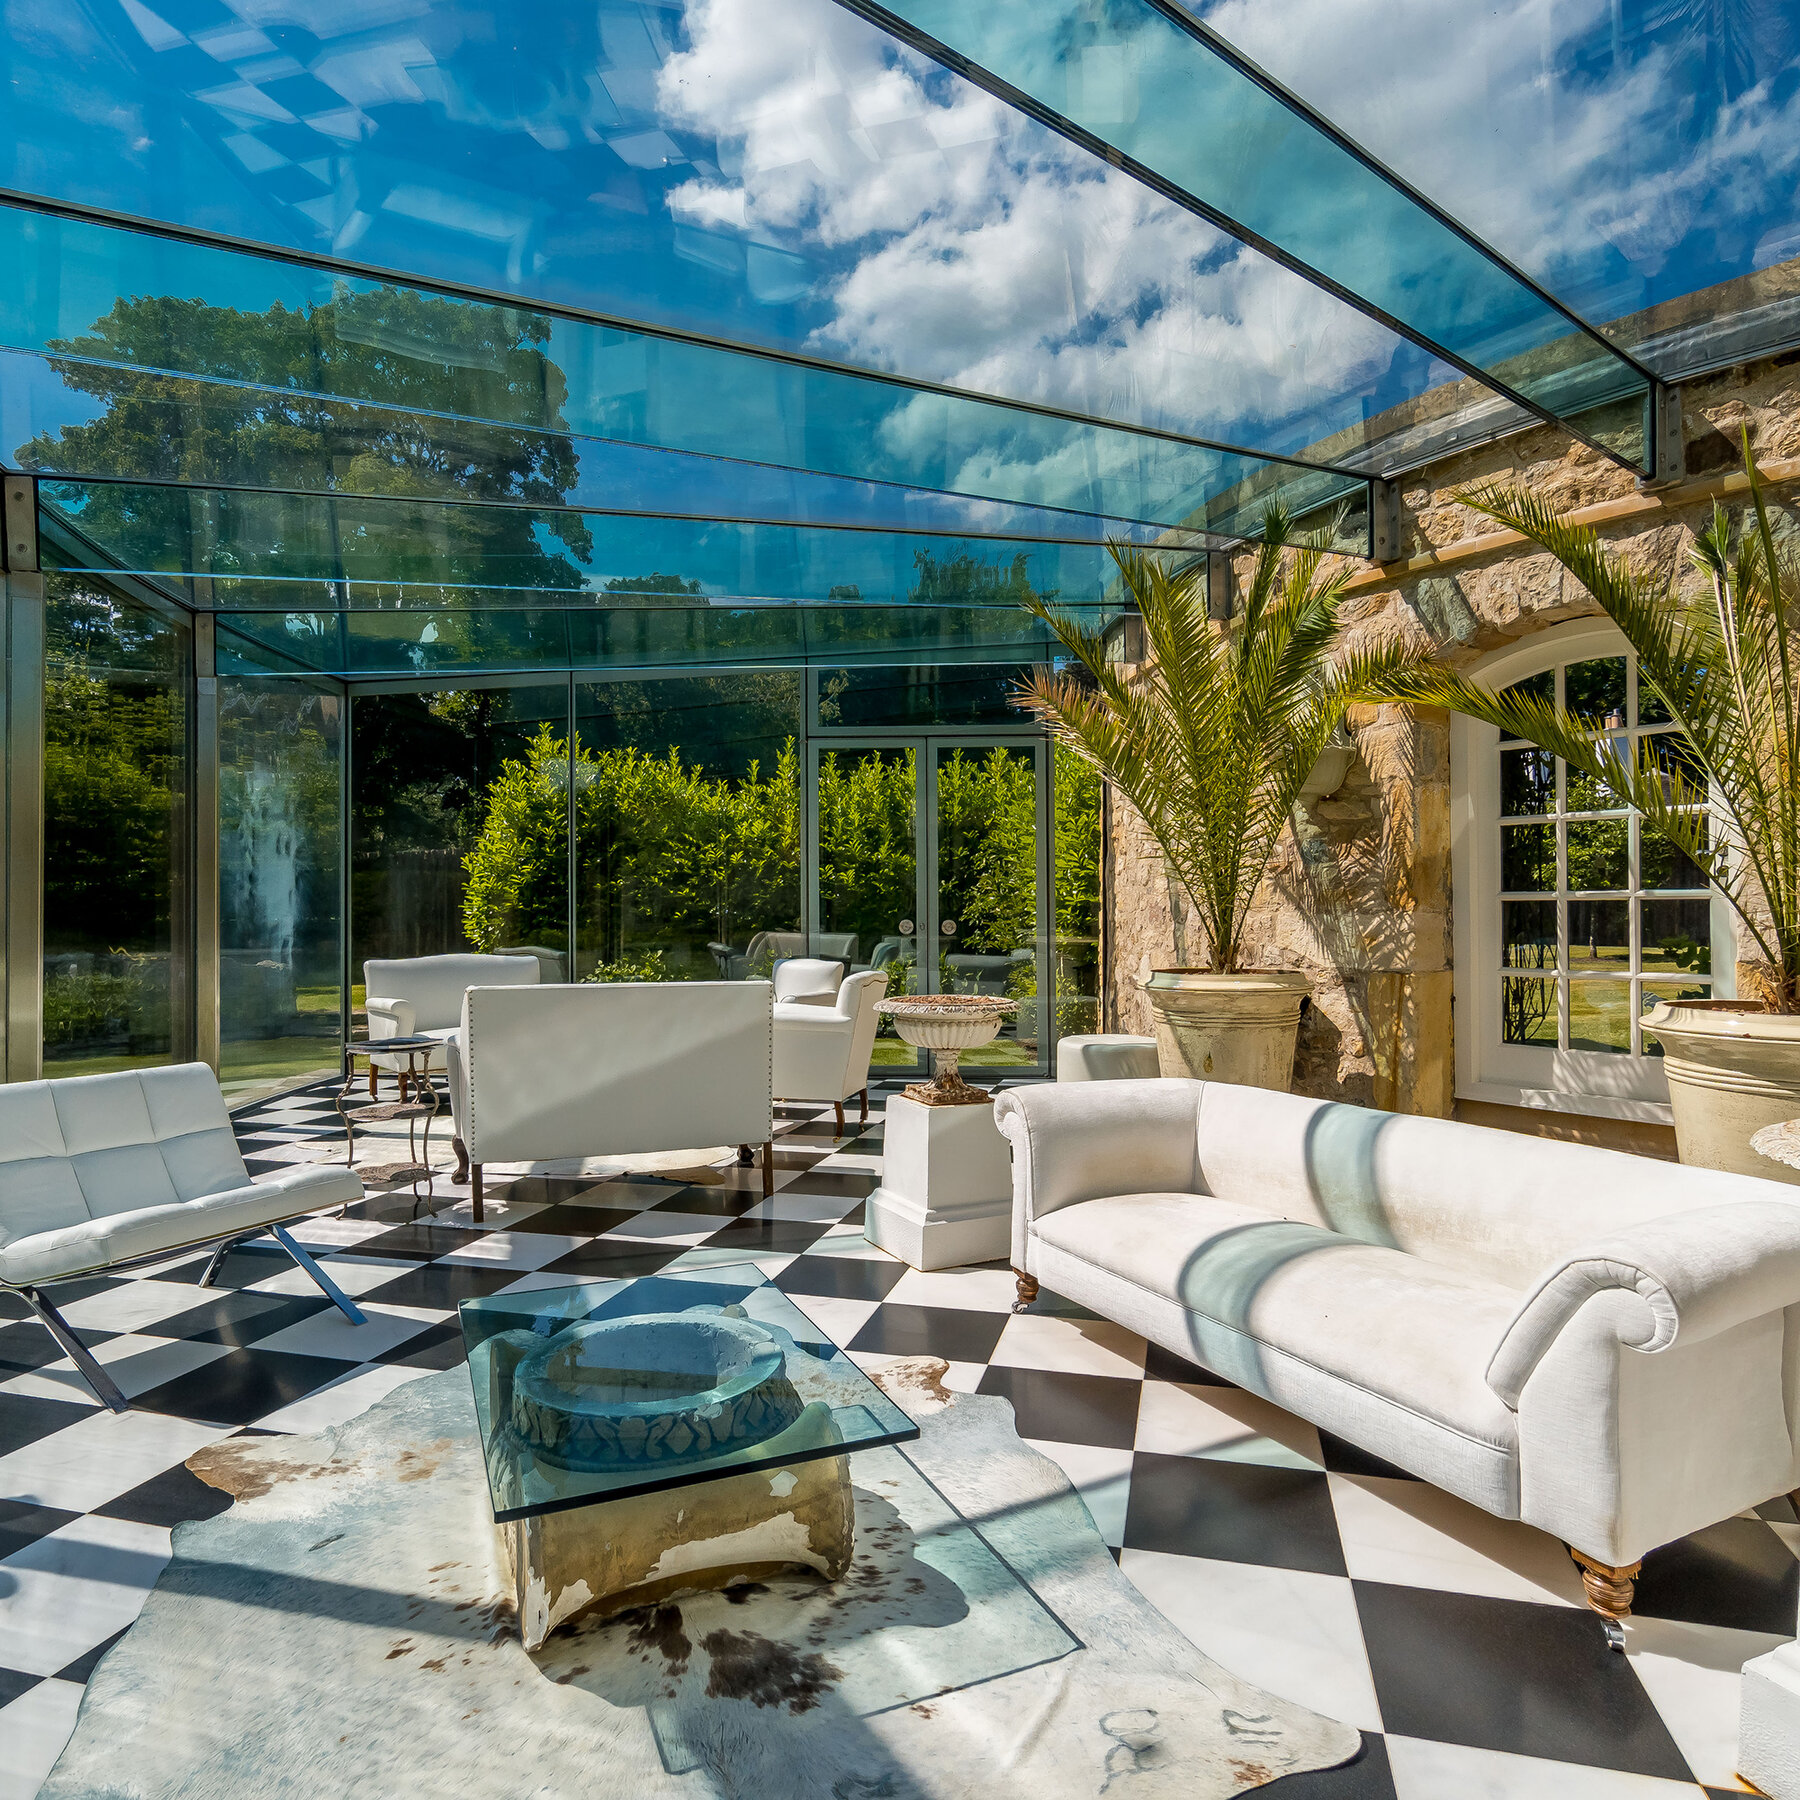 House Hunting In Scotland Vintage Mansion Meets Modern Style For 2 Million The New York Times - Garden Furniture Clearance Edinburgh